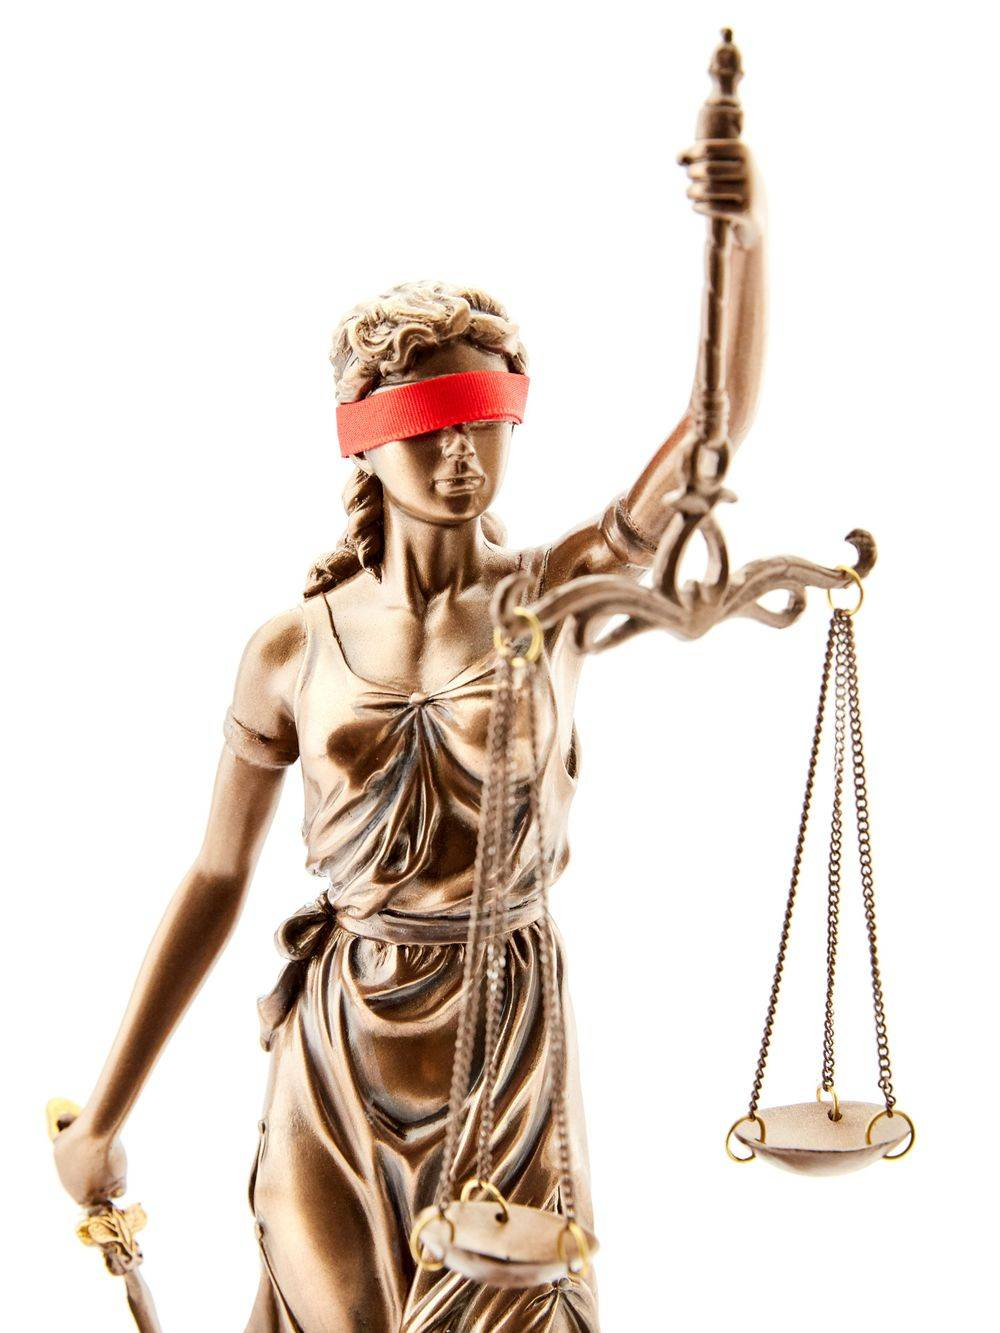 Blind justice statue to show irony when it comes to race relations in America